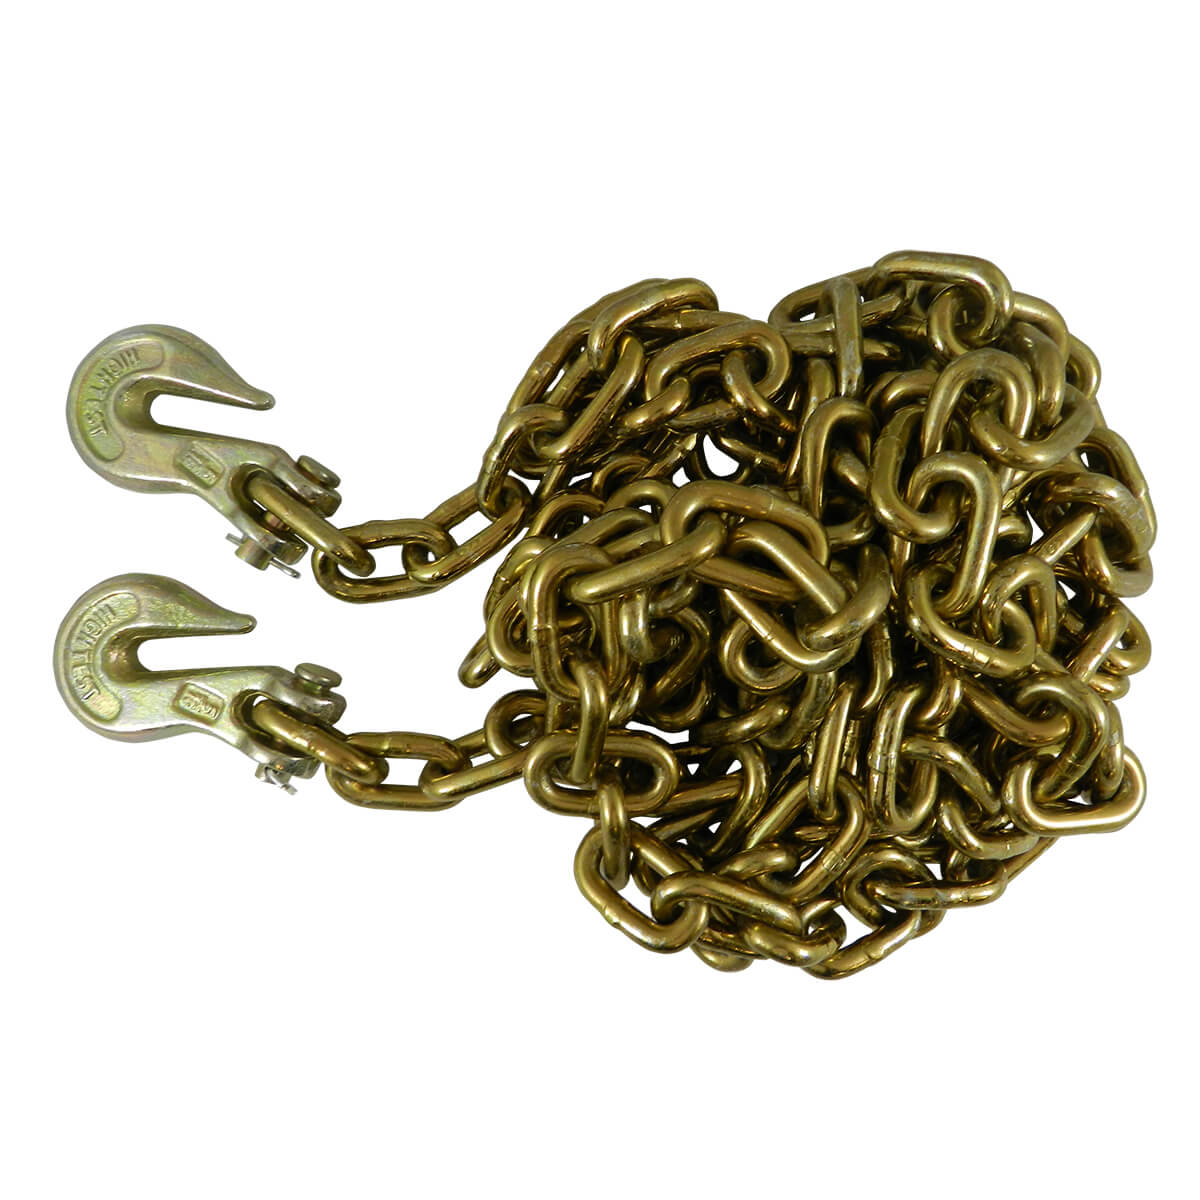 """Chain with Clevis Grab Hooks - Grade 43 - 5/16"""" x 14'"""